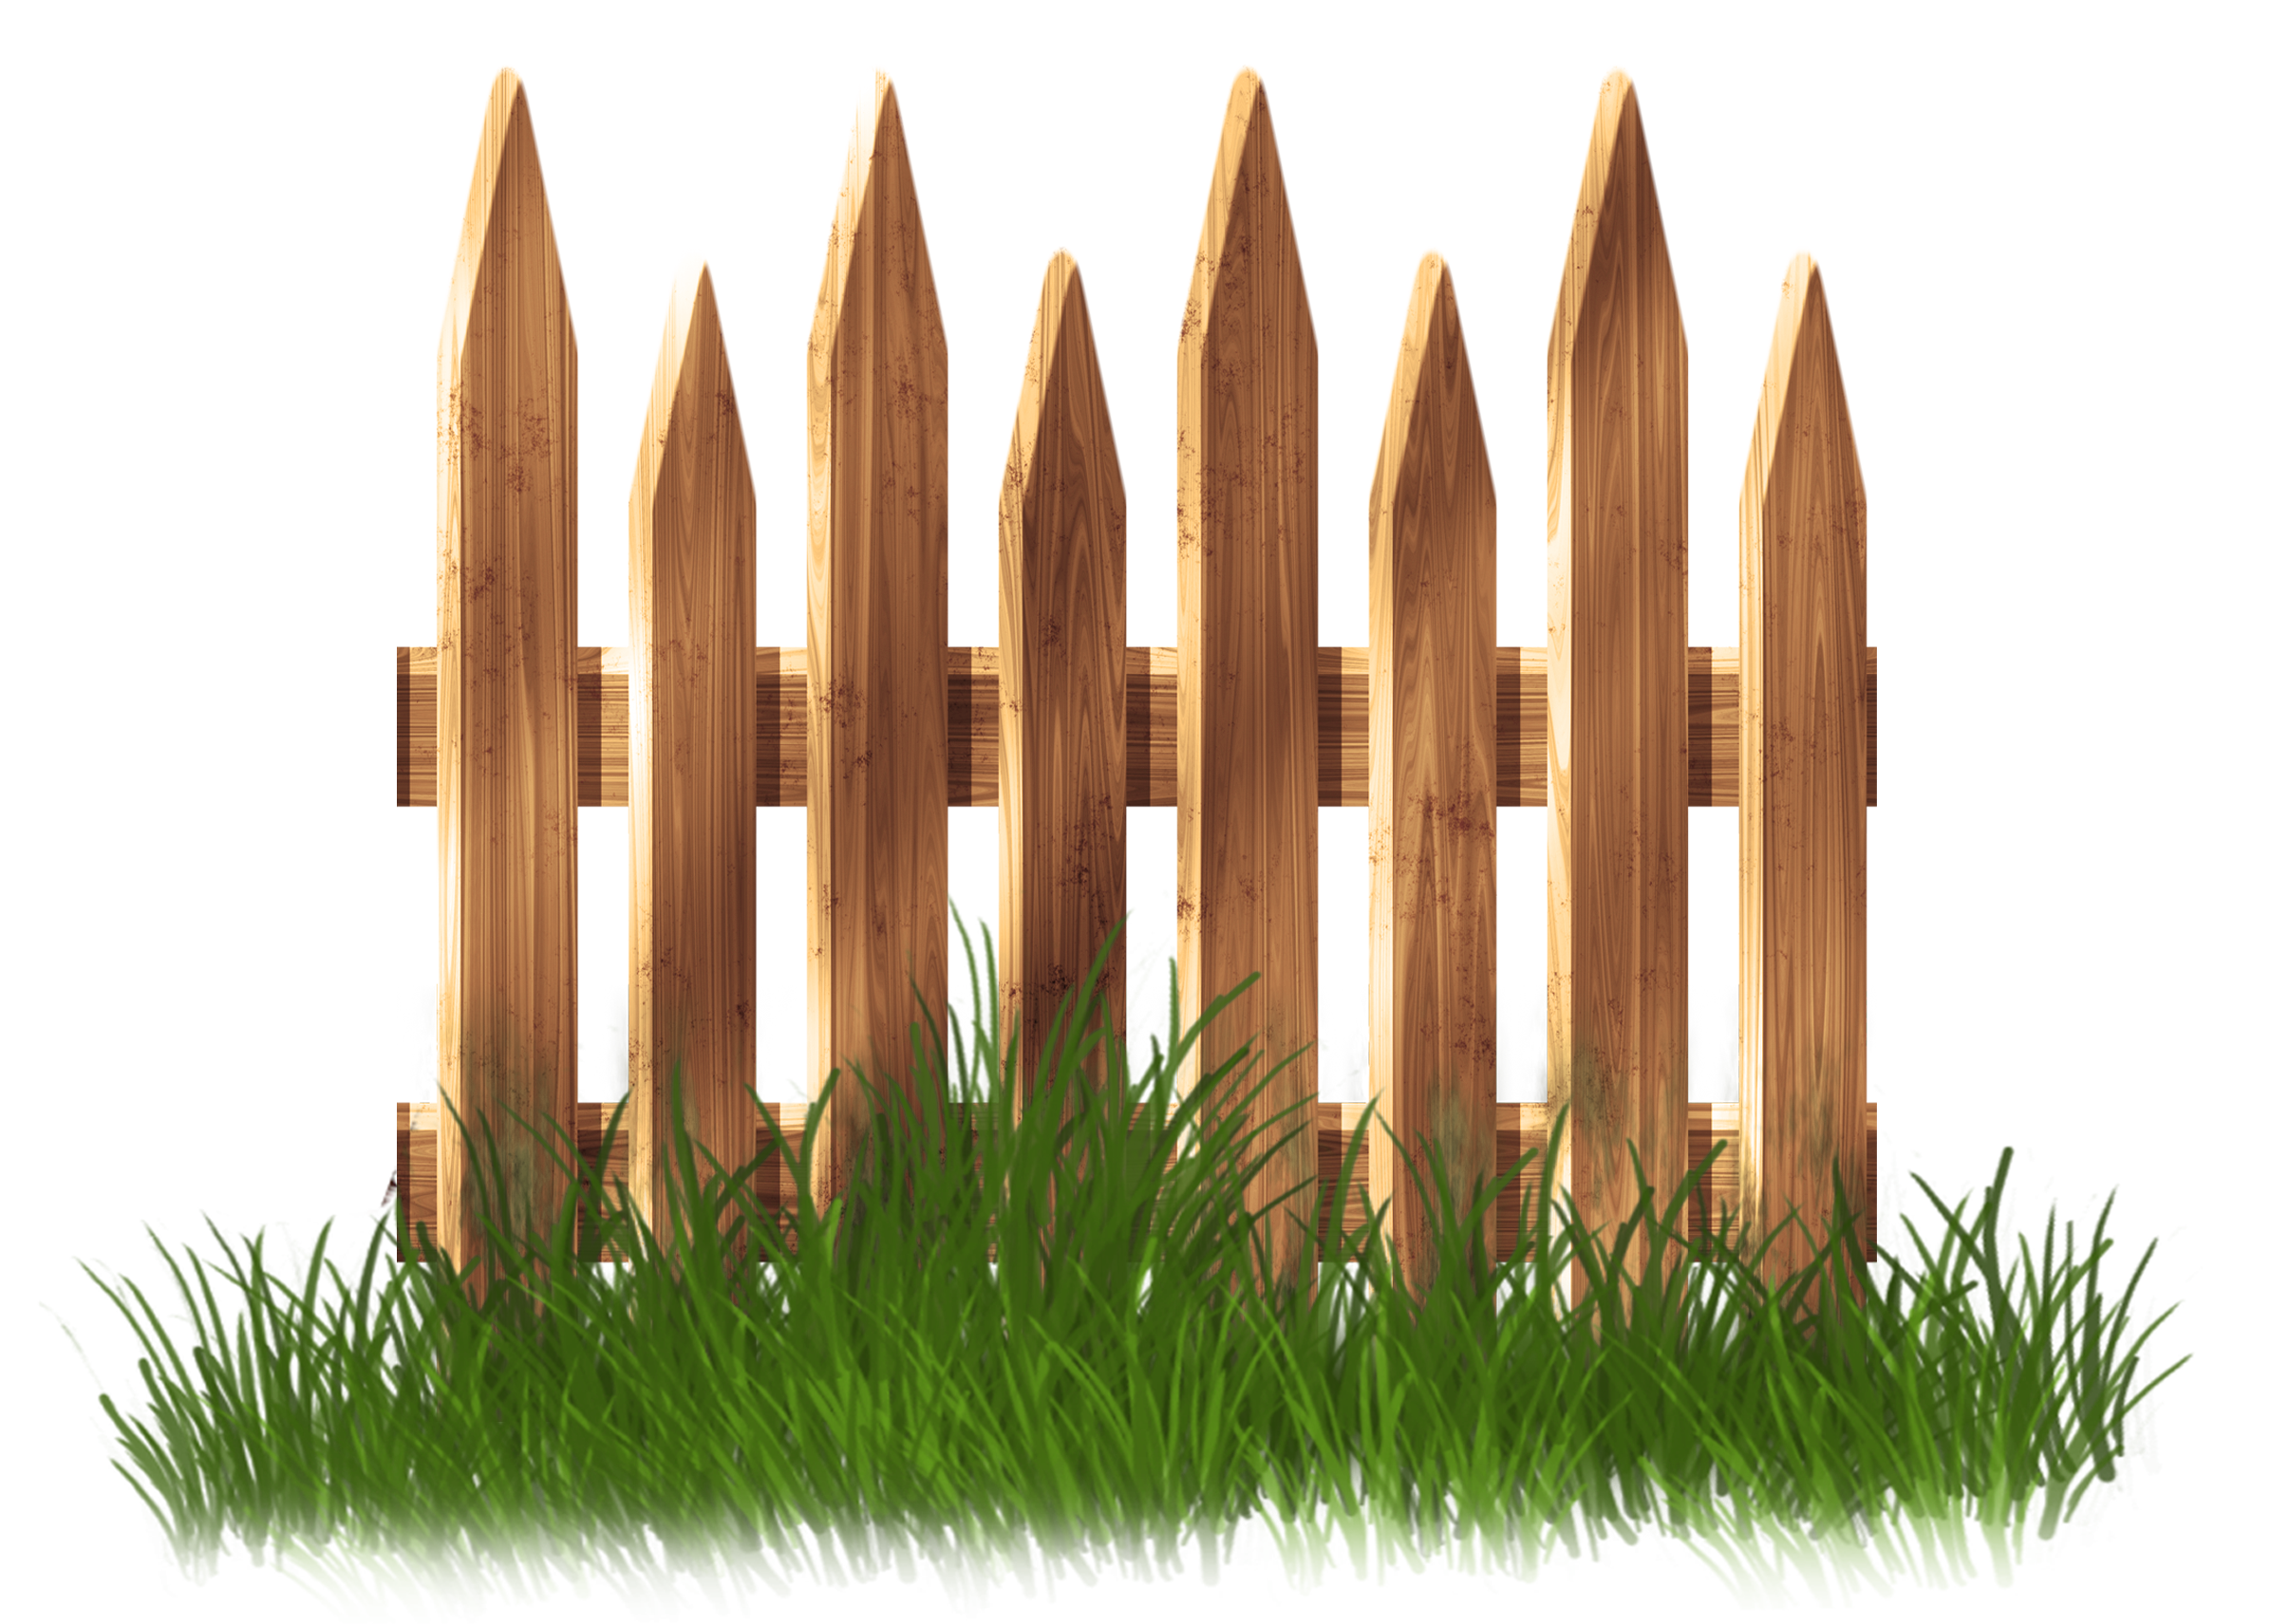 Transparent_Wooden_Garden_Fence_with_Grass_Clipart.png?m=1431990144.